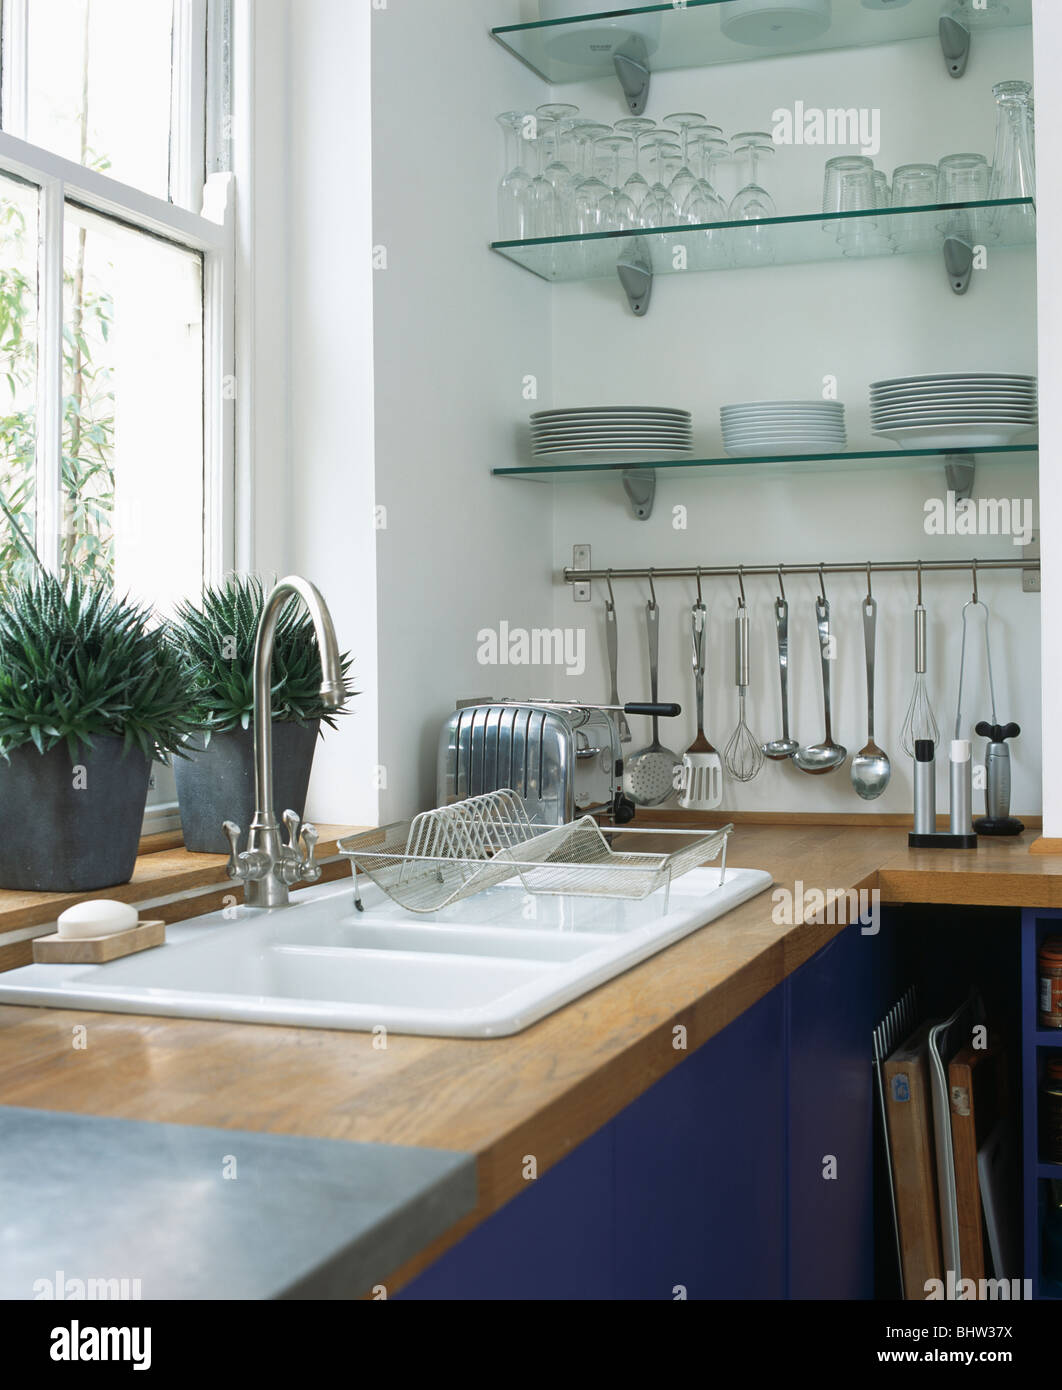 Genial Double White Sink Below Window In Modern Kitchen With Glass Shelves Above  Steel Utensils On Metal Storage Rack